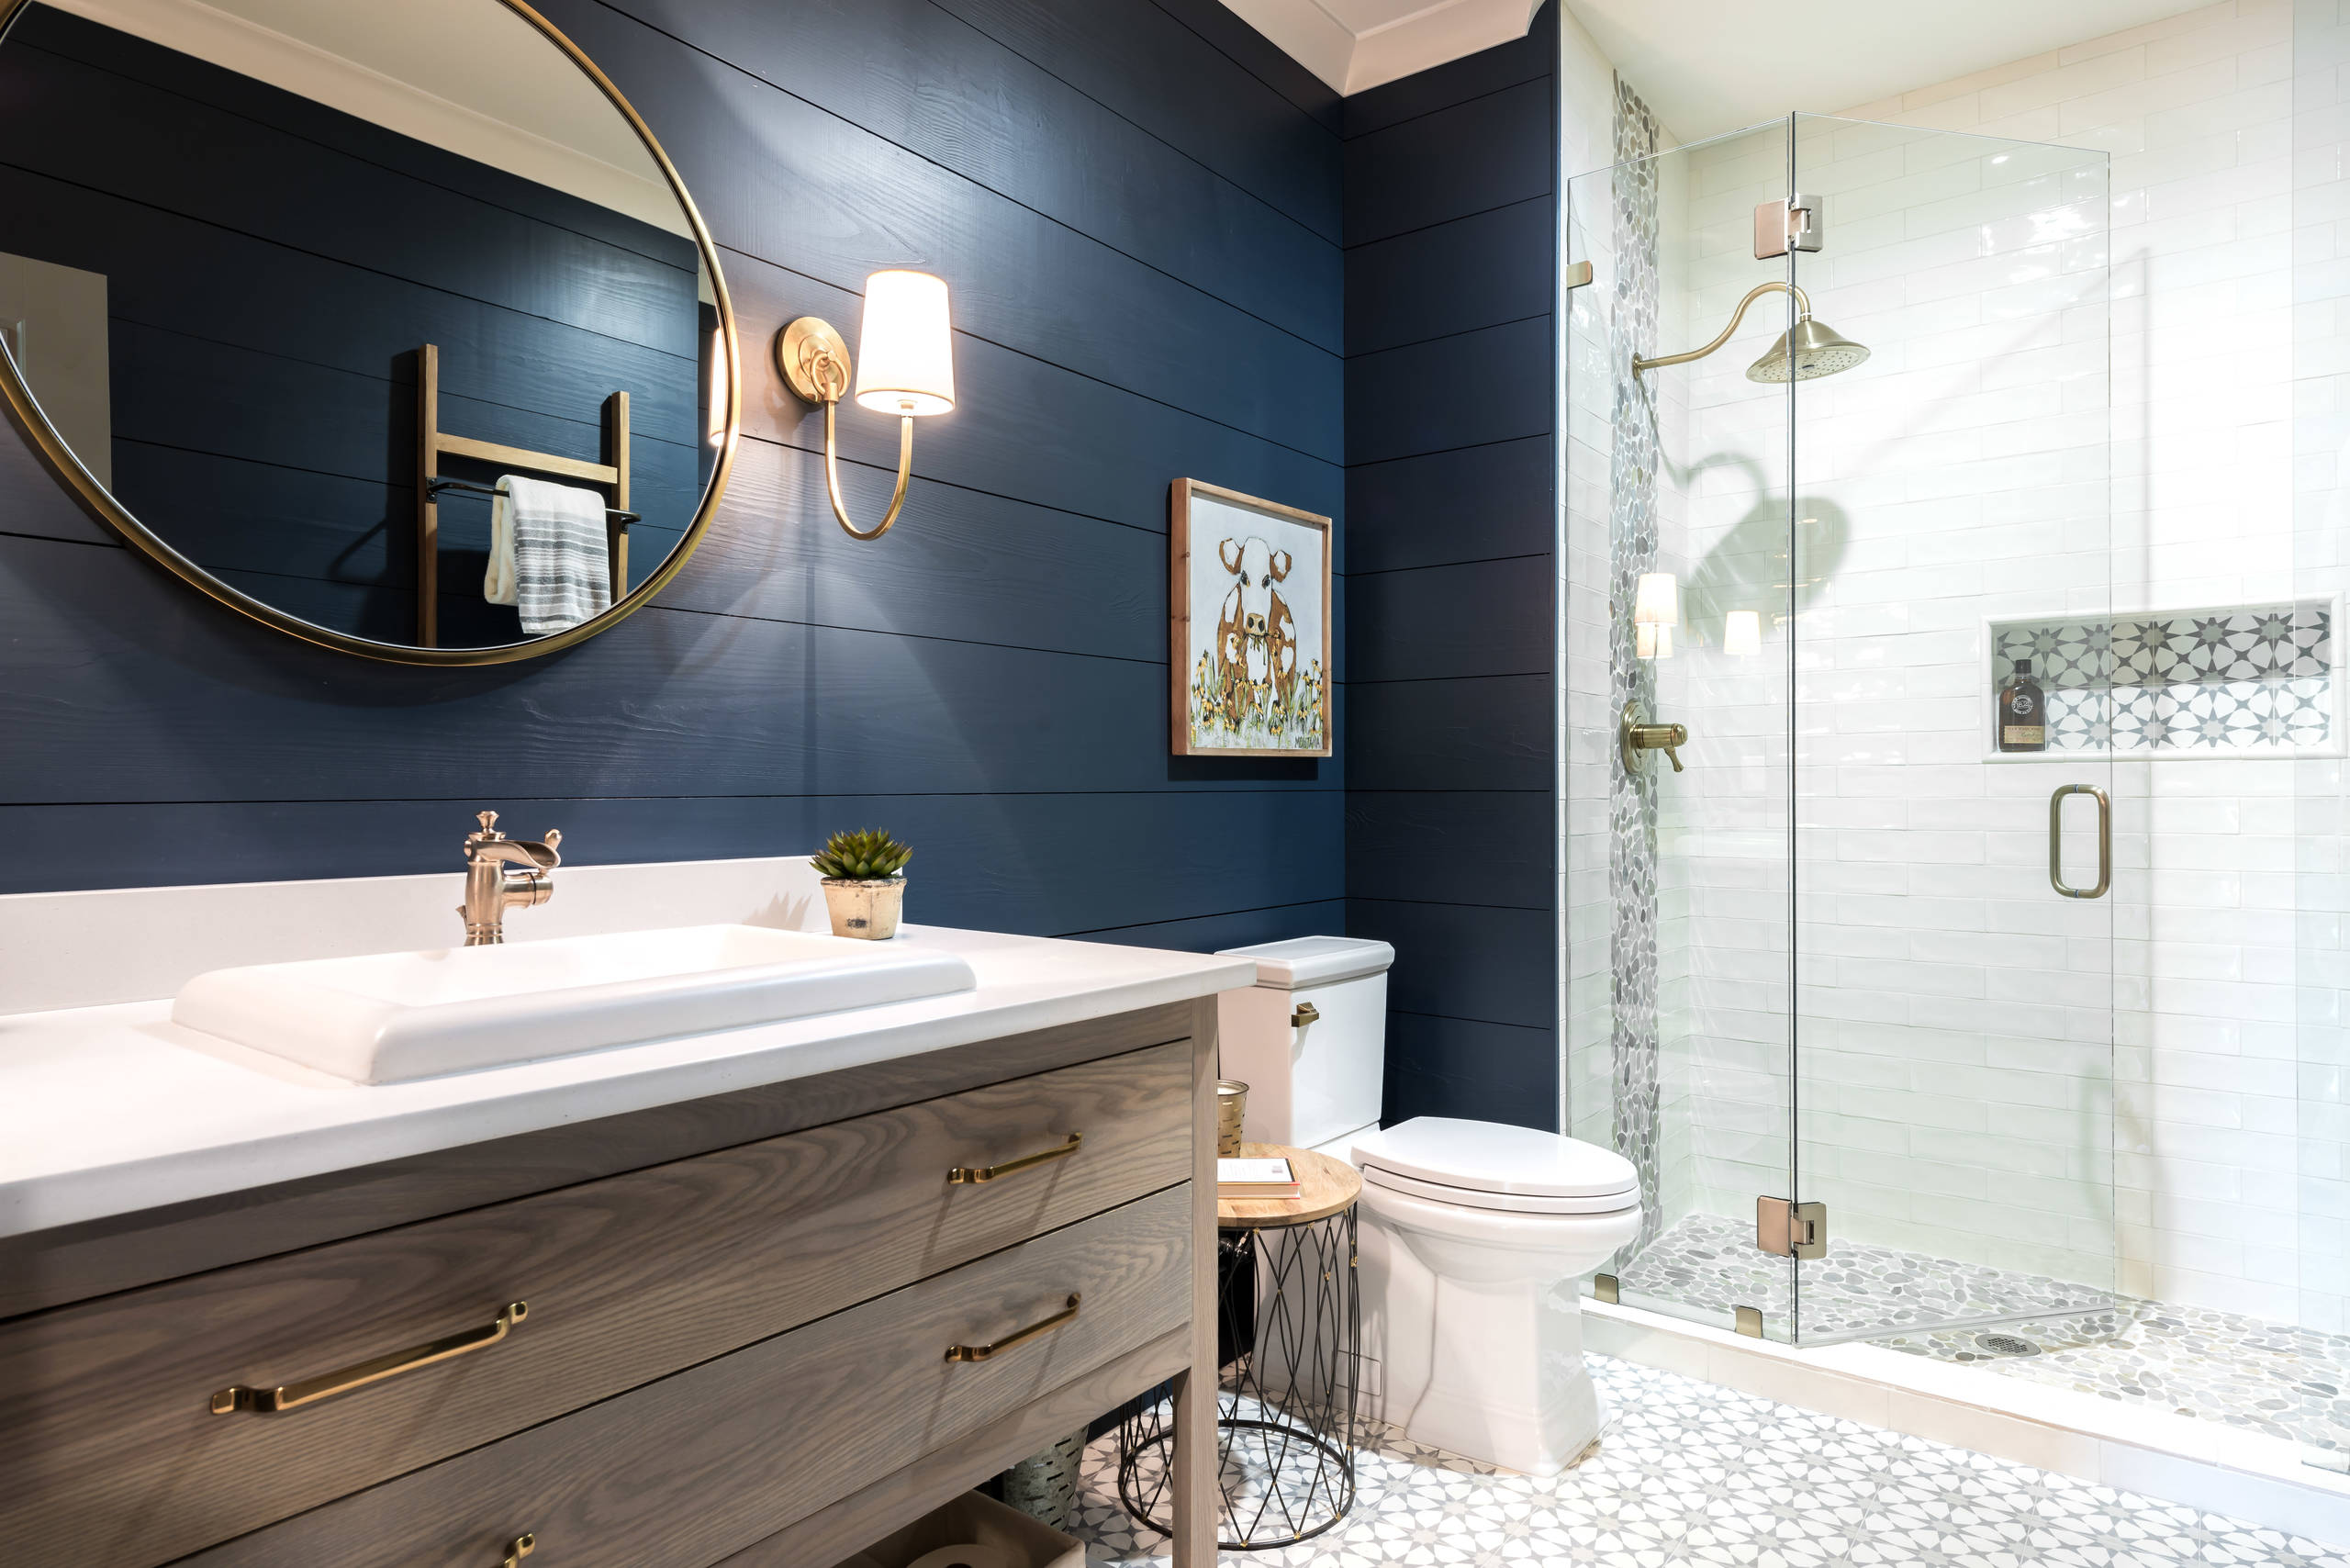 75 Beautiful Bathroom With Blue Walls Pictures & Ideas - January, 2021 | Houzz